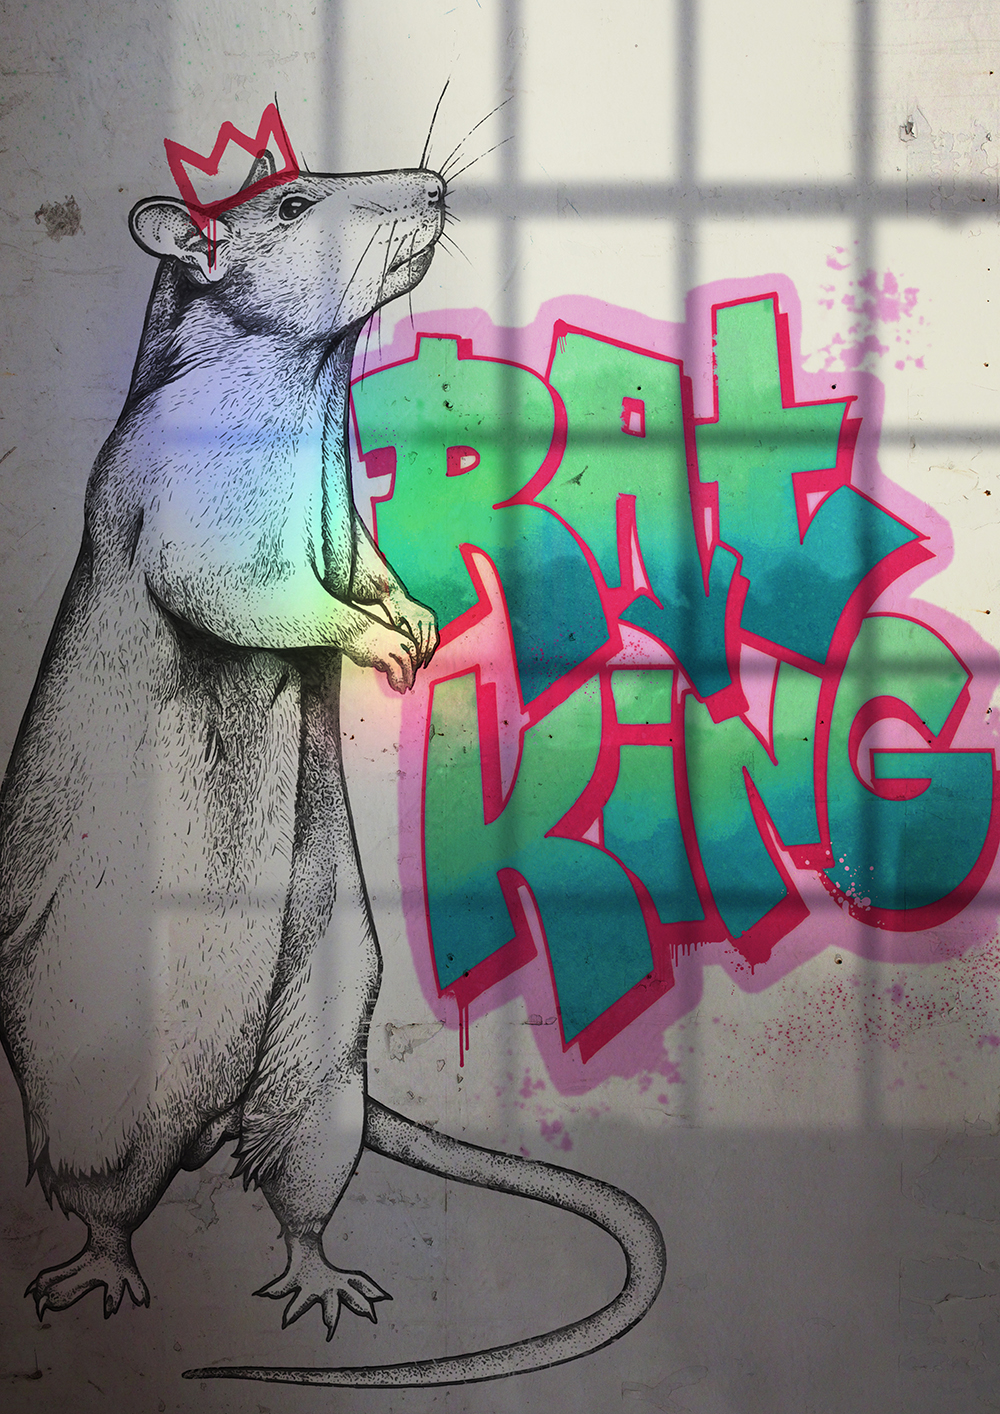 Rat King (Kyrptonite Plays)